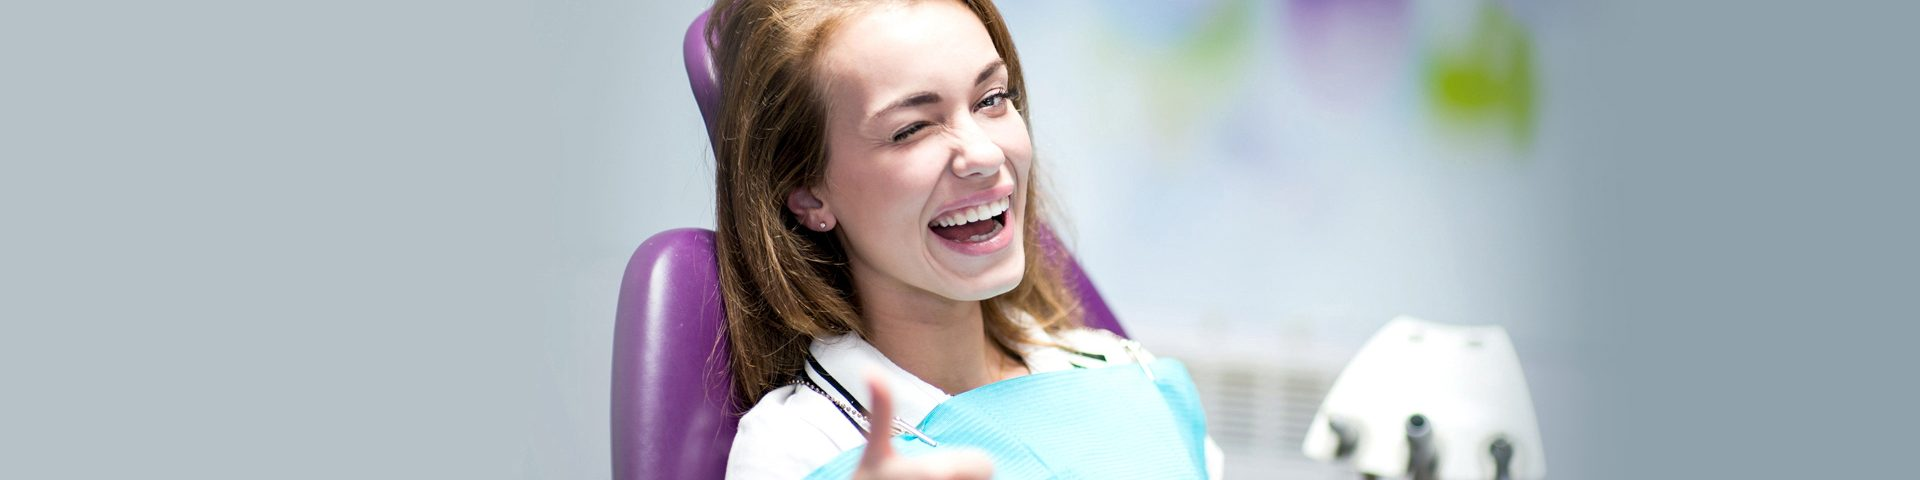 How Well Can Preventive Dentistry Protect Your Oral Health?